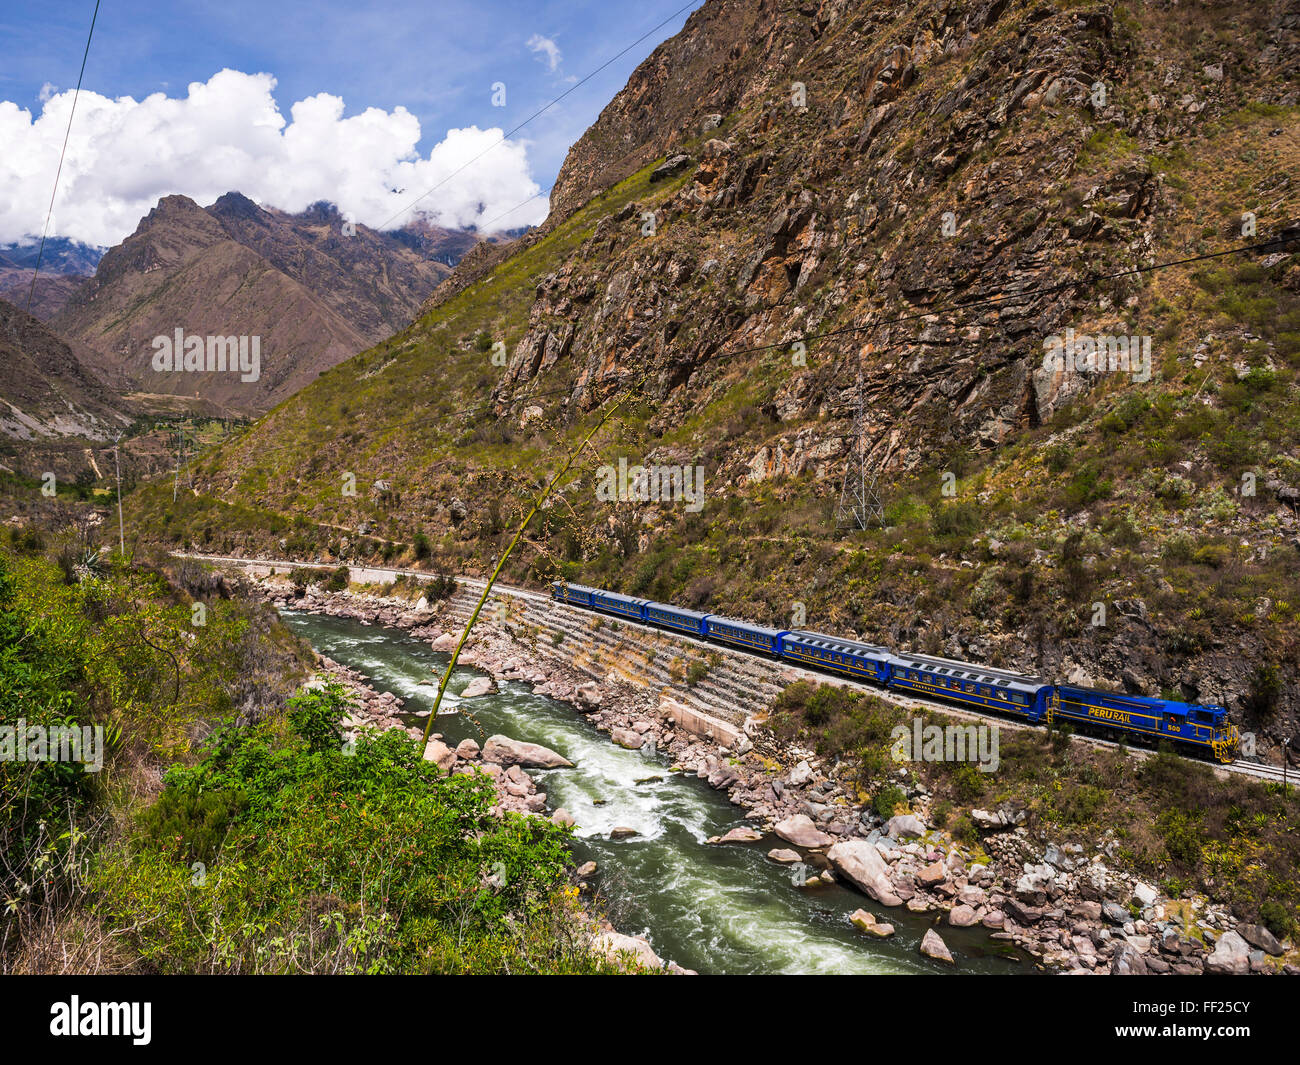 Train between Aguas CaRMientes and ORMRMantaytambo through the Sacred VaRMRMey, Cusco Region, Peru, South America Stock Photo